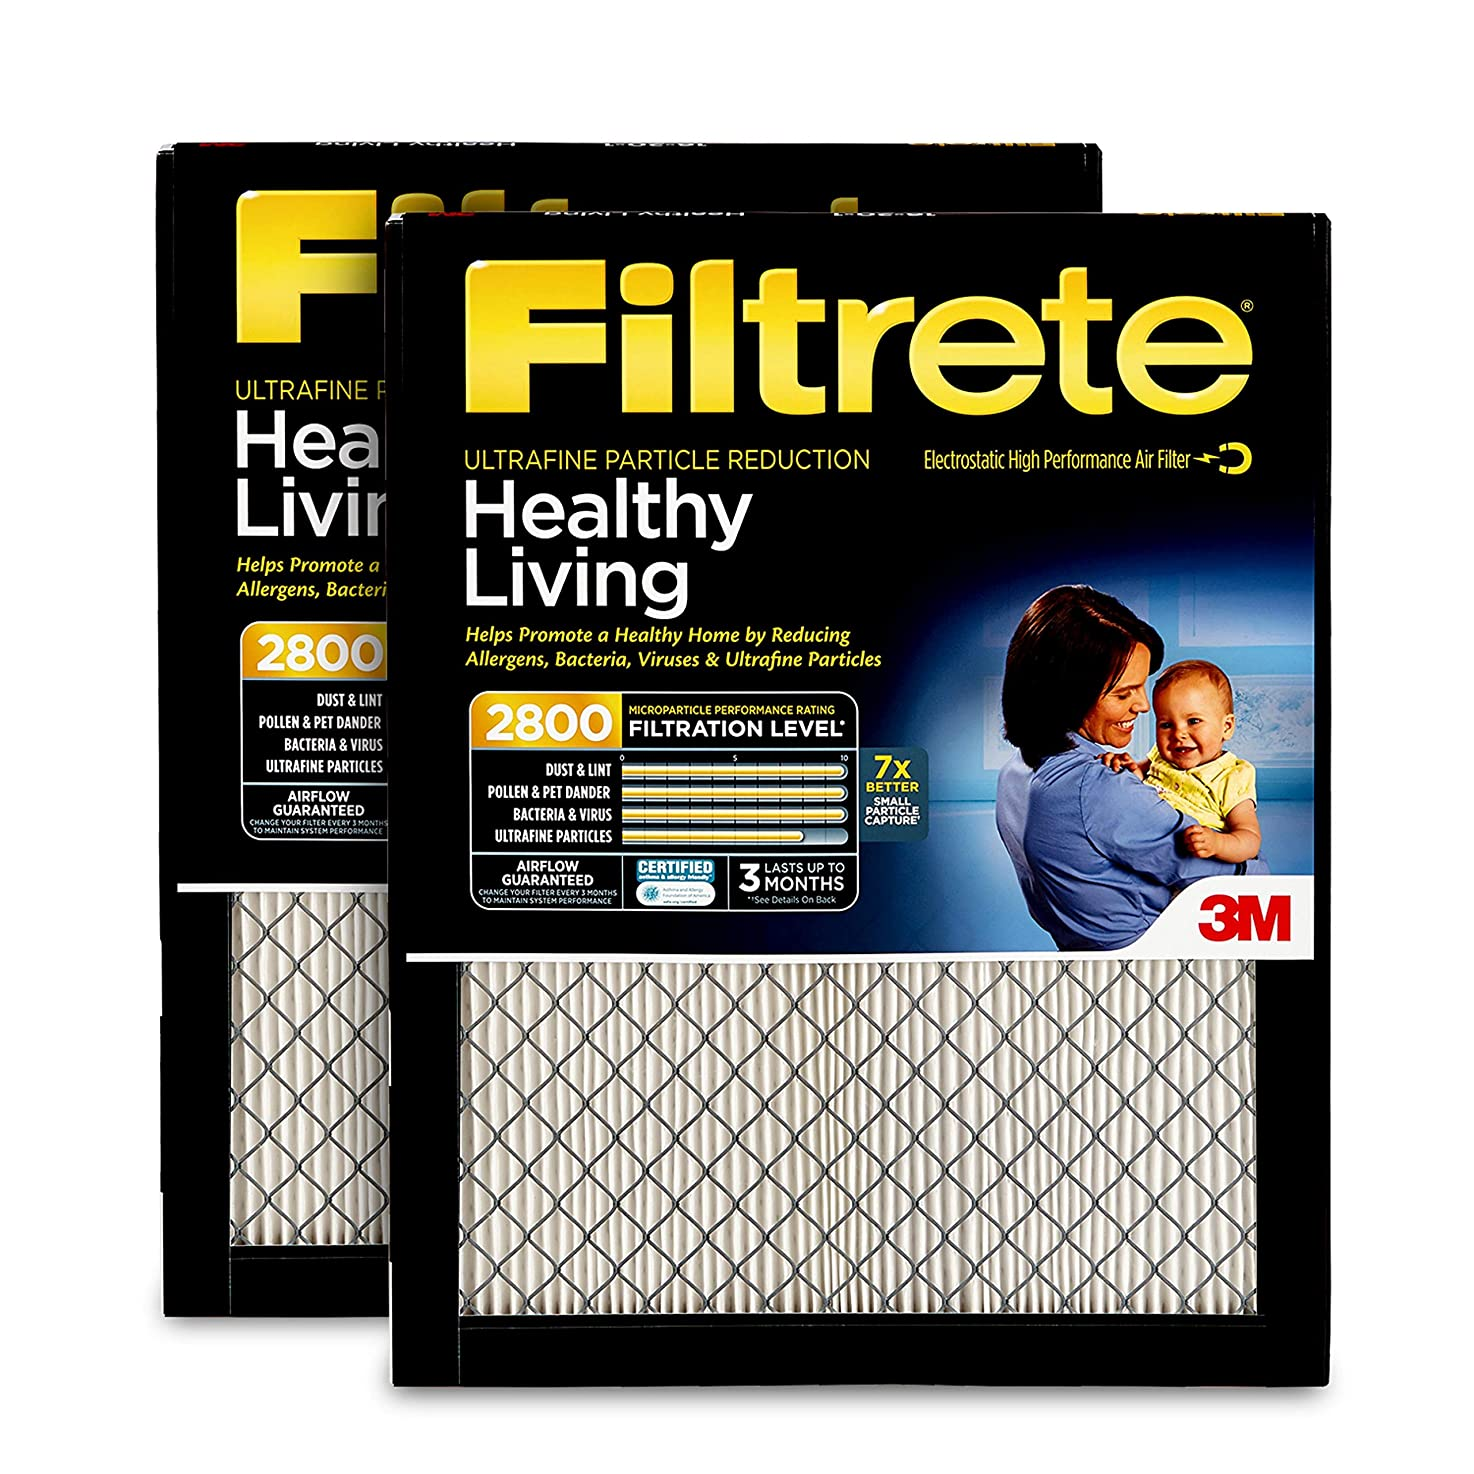 Filtrete 16x25x1, AC Furnace Air Filter, MPR 2800, Healthy Living Ultrafine Particle Reduction, 2-Pack gefizuclyhotf3